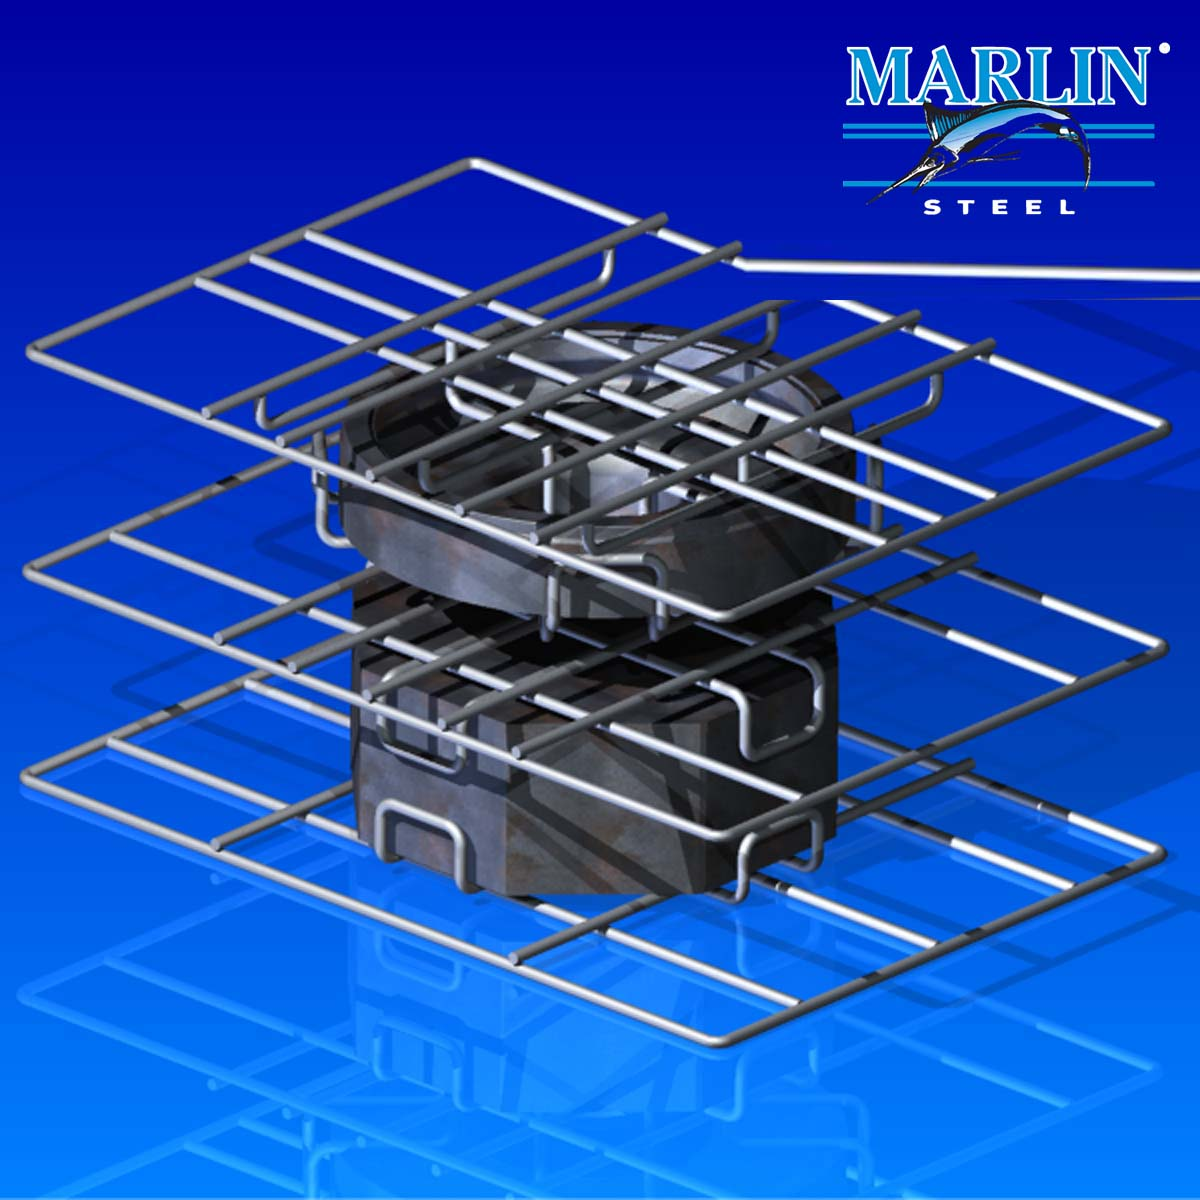 Marlin Steel Wire Basket 961002